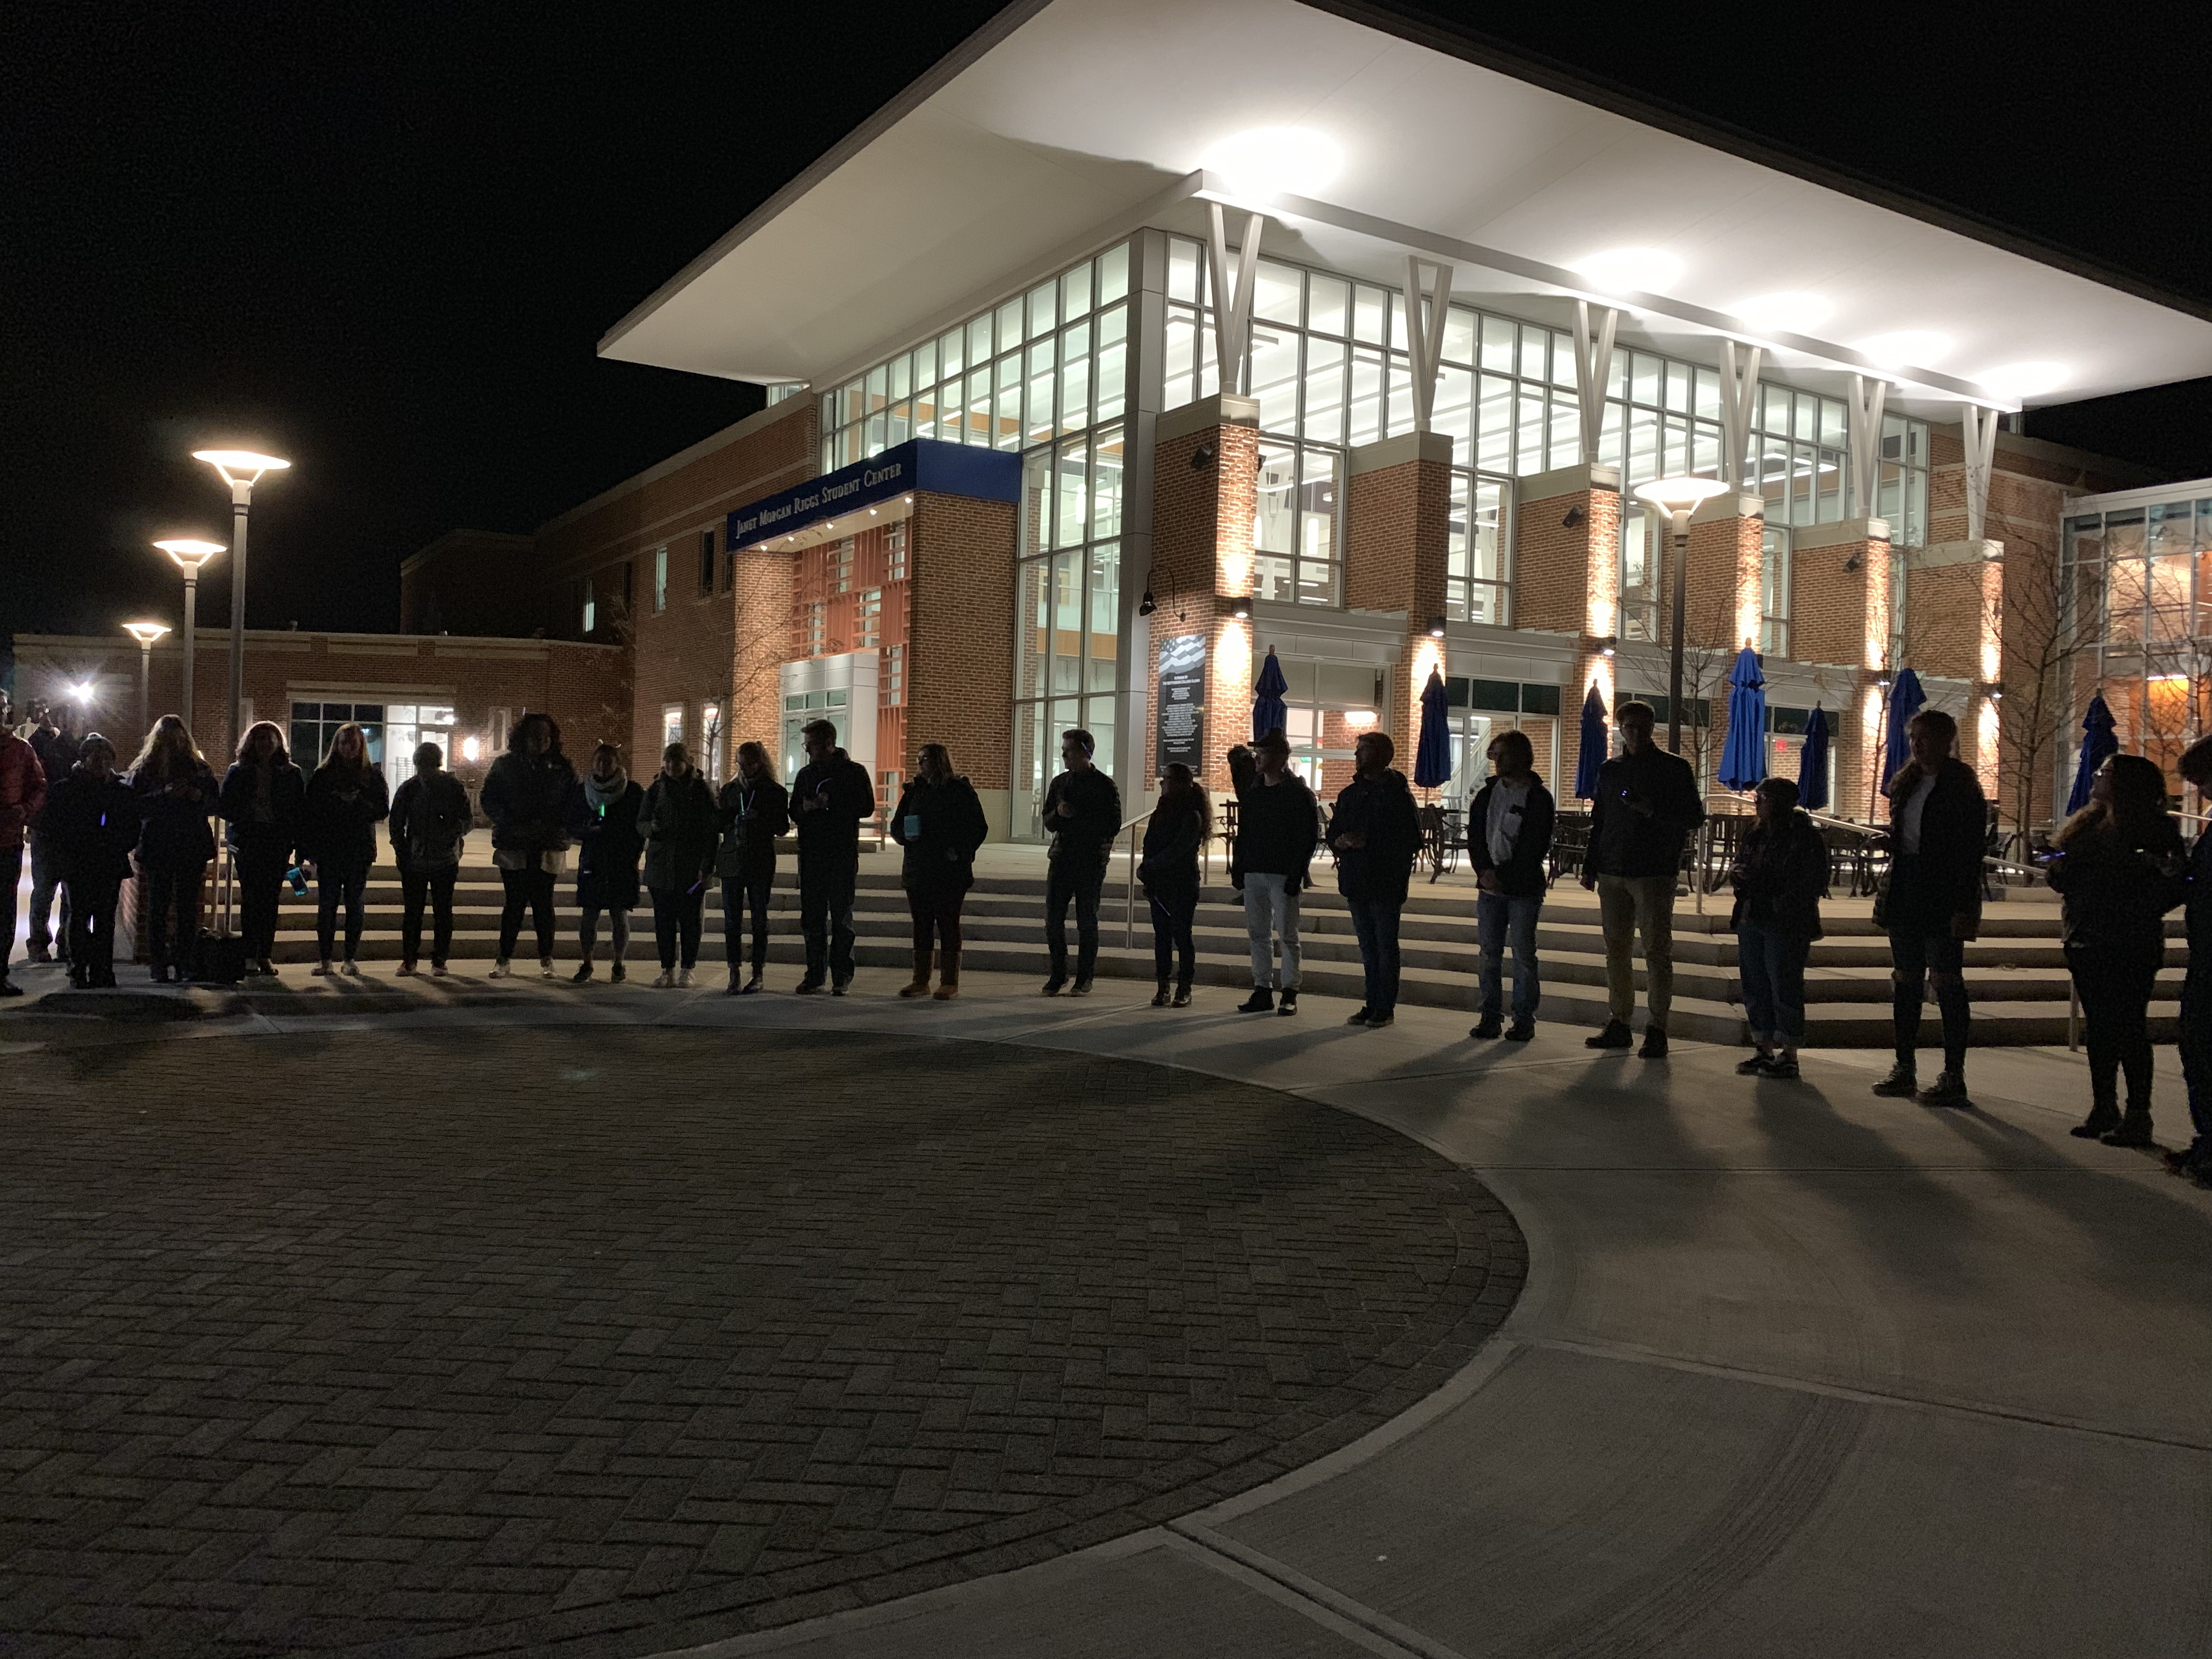 Unsilent Night participants form a circle outside of the College Union Building after walking across campus with music playing from their mobile devices (Photo courtesy of Julia Sharapi)